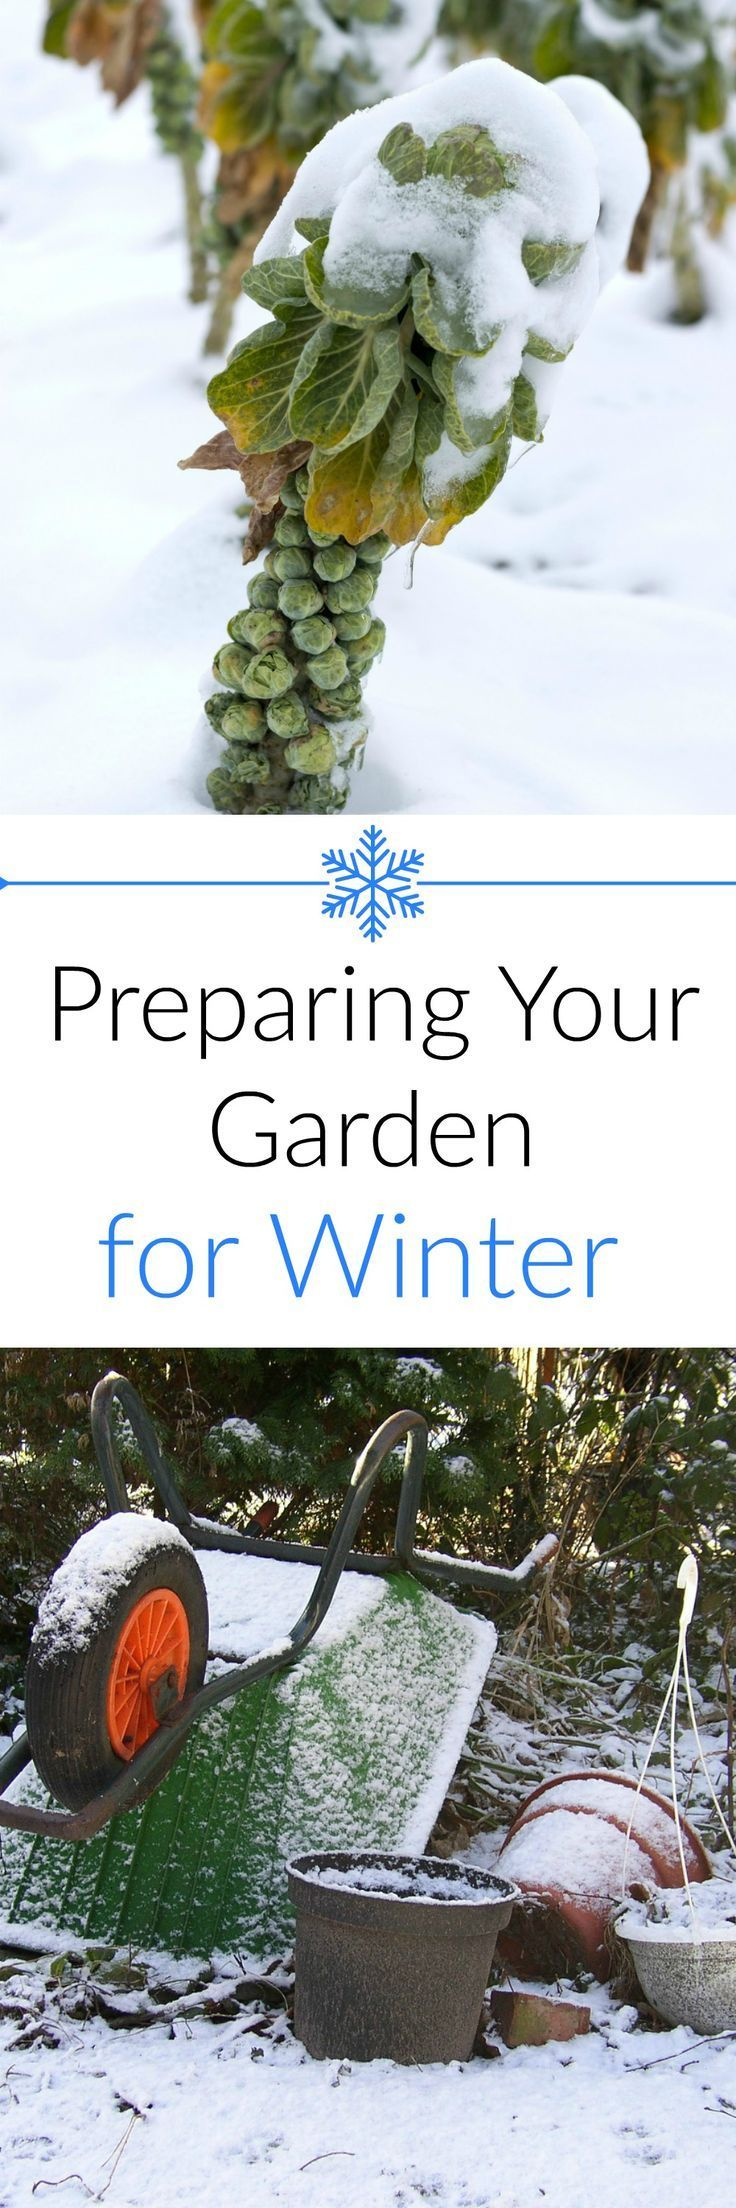 16 best winter in the garden images on pinterest gardening tips